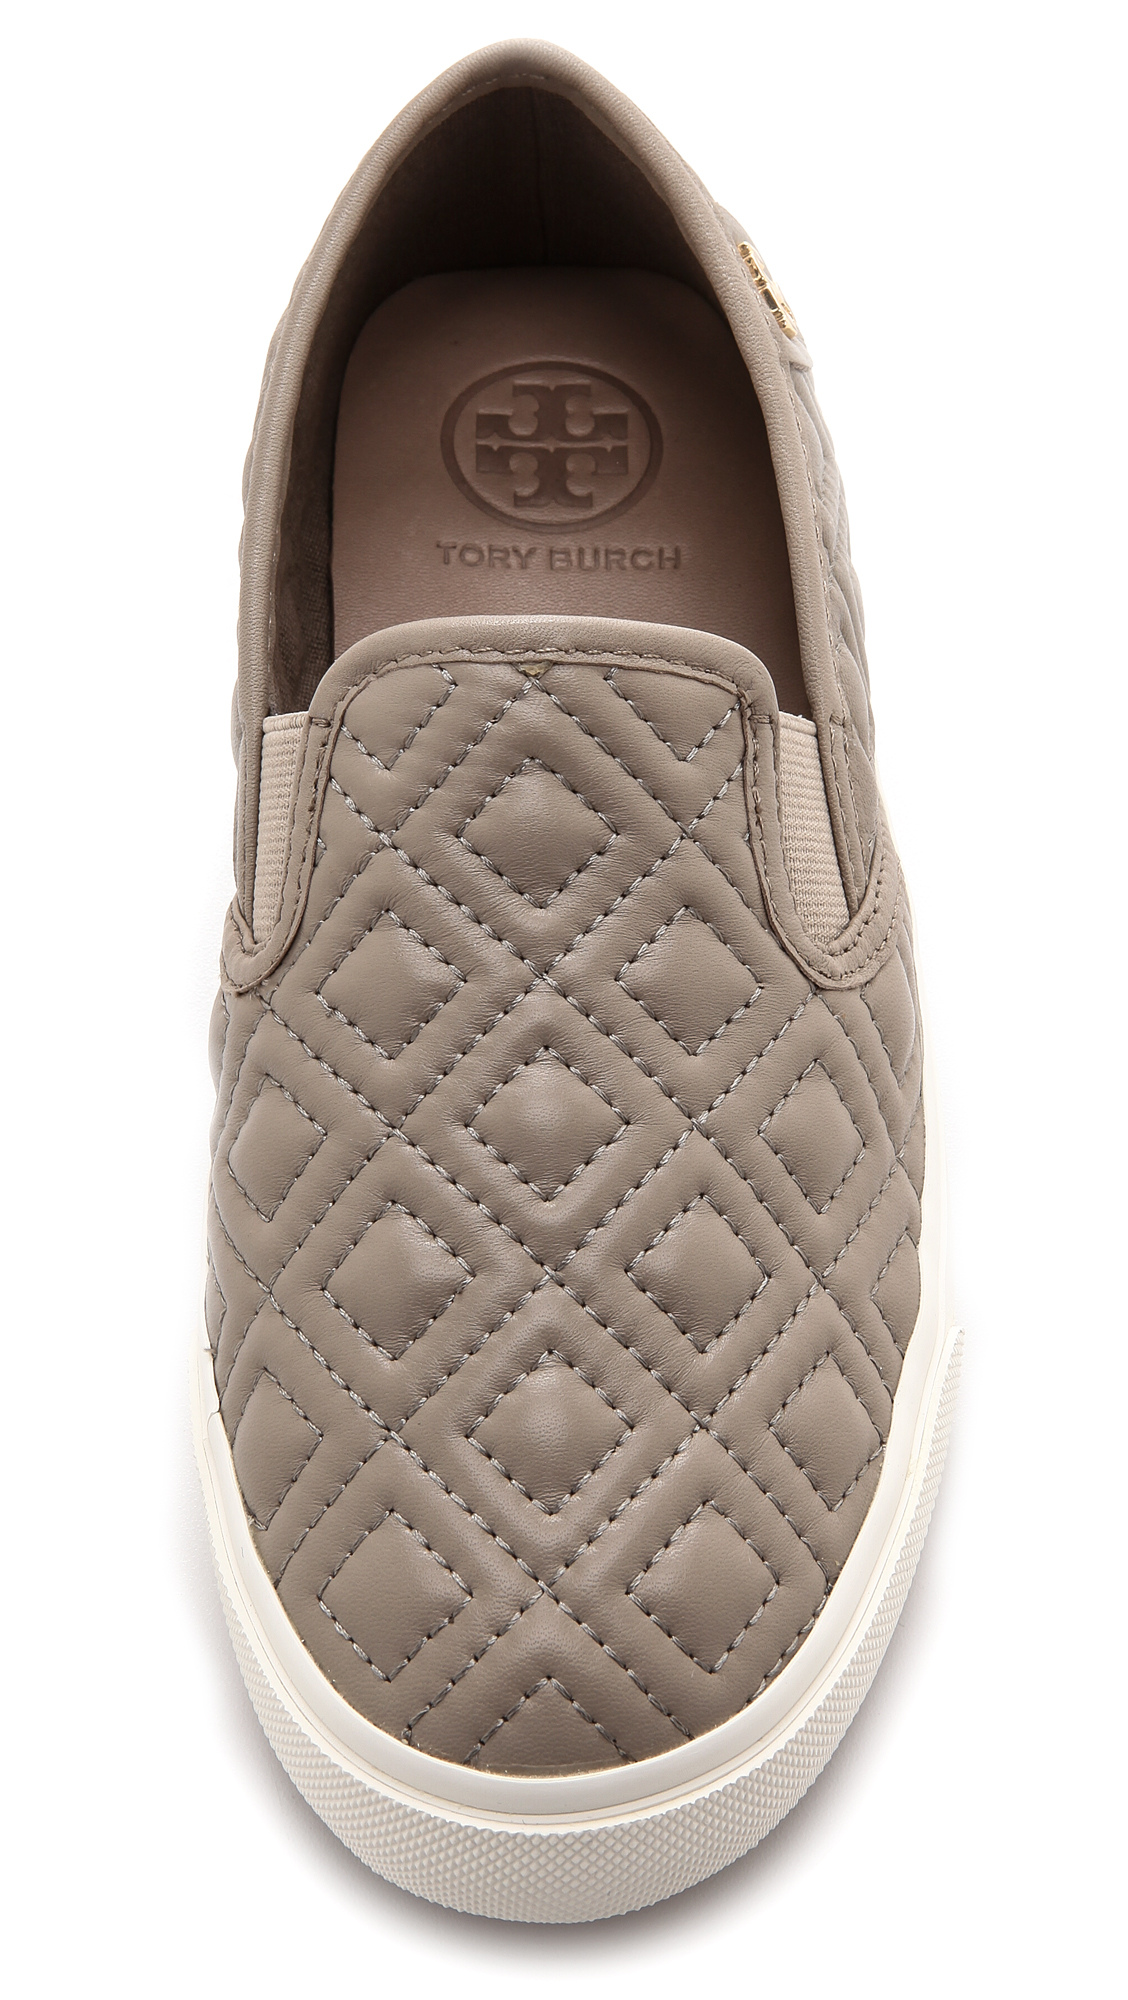 3a54e8990ce4 Tory Burch Jesse Quilted Slip On Sneakers